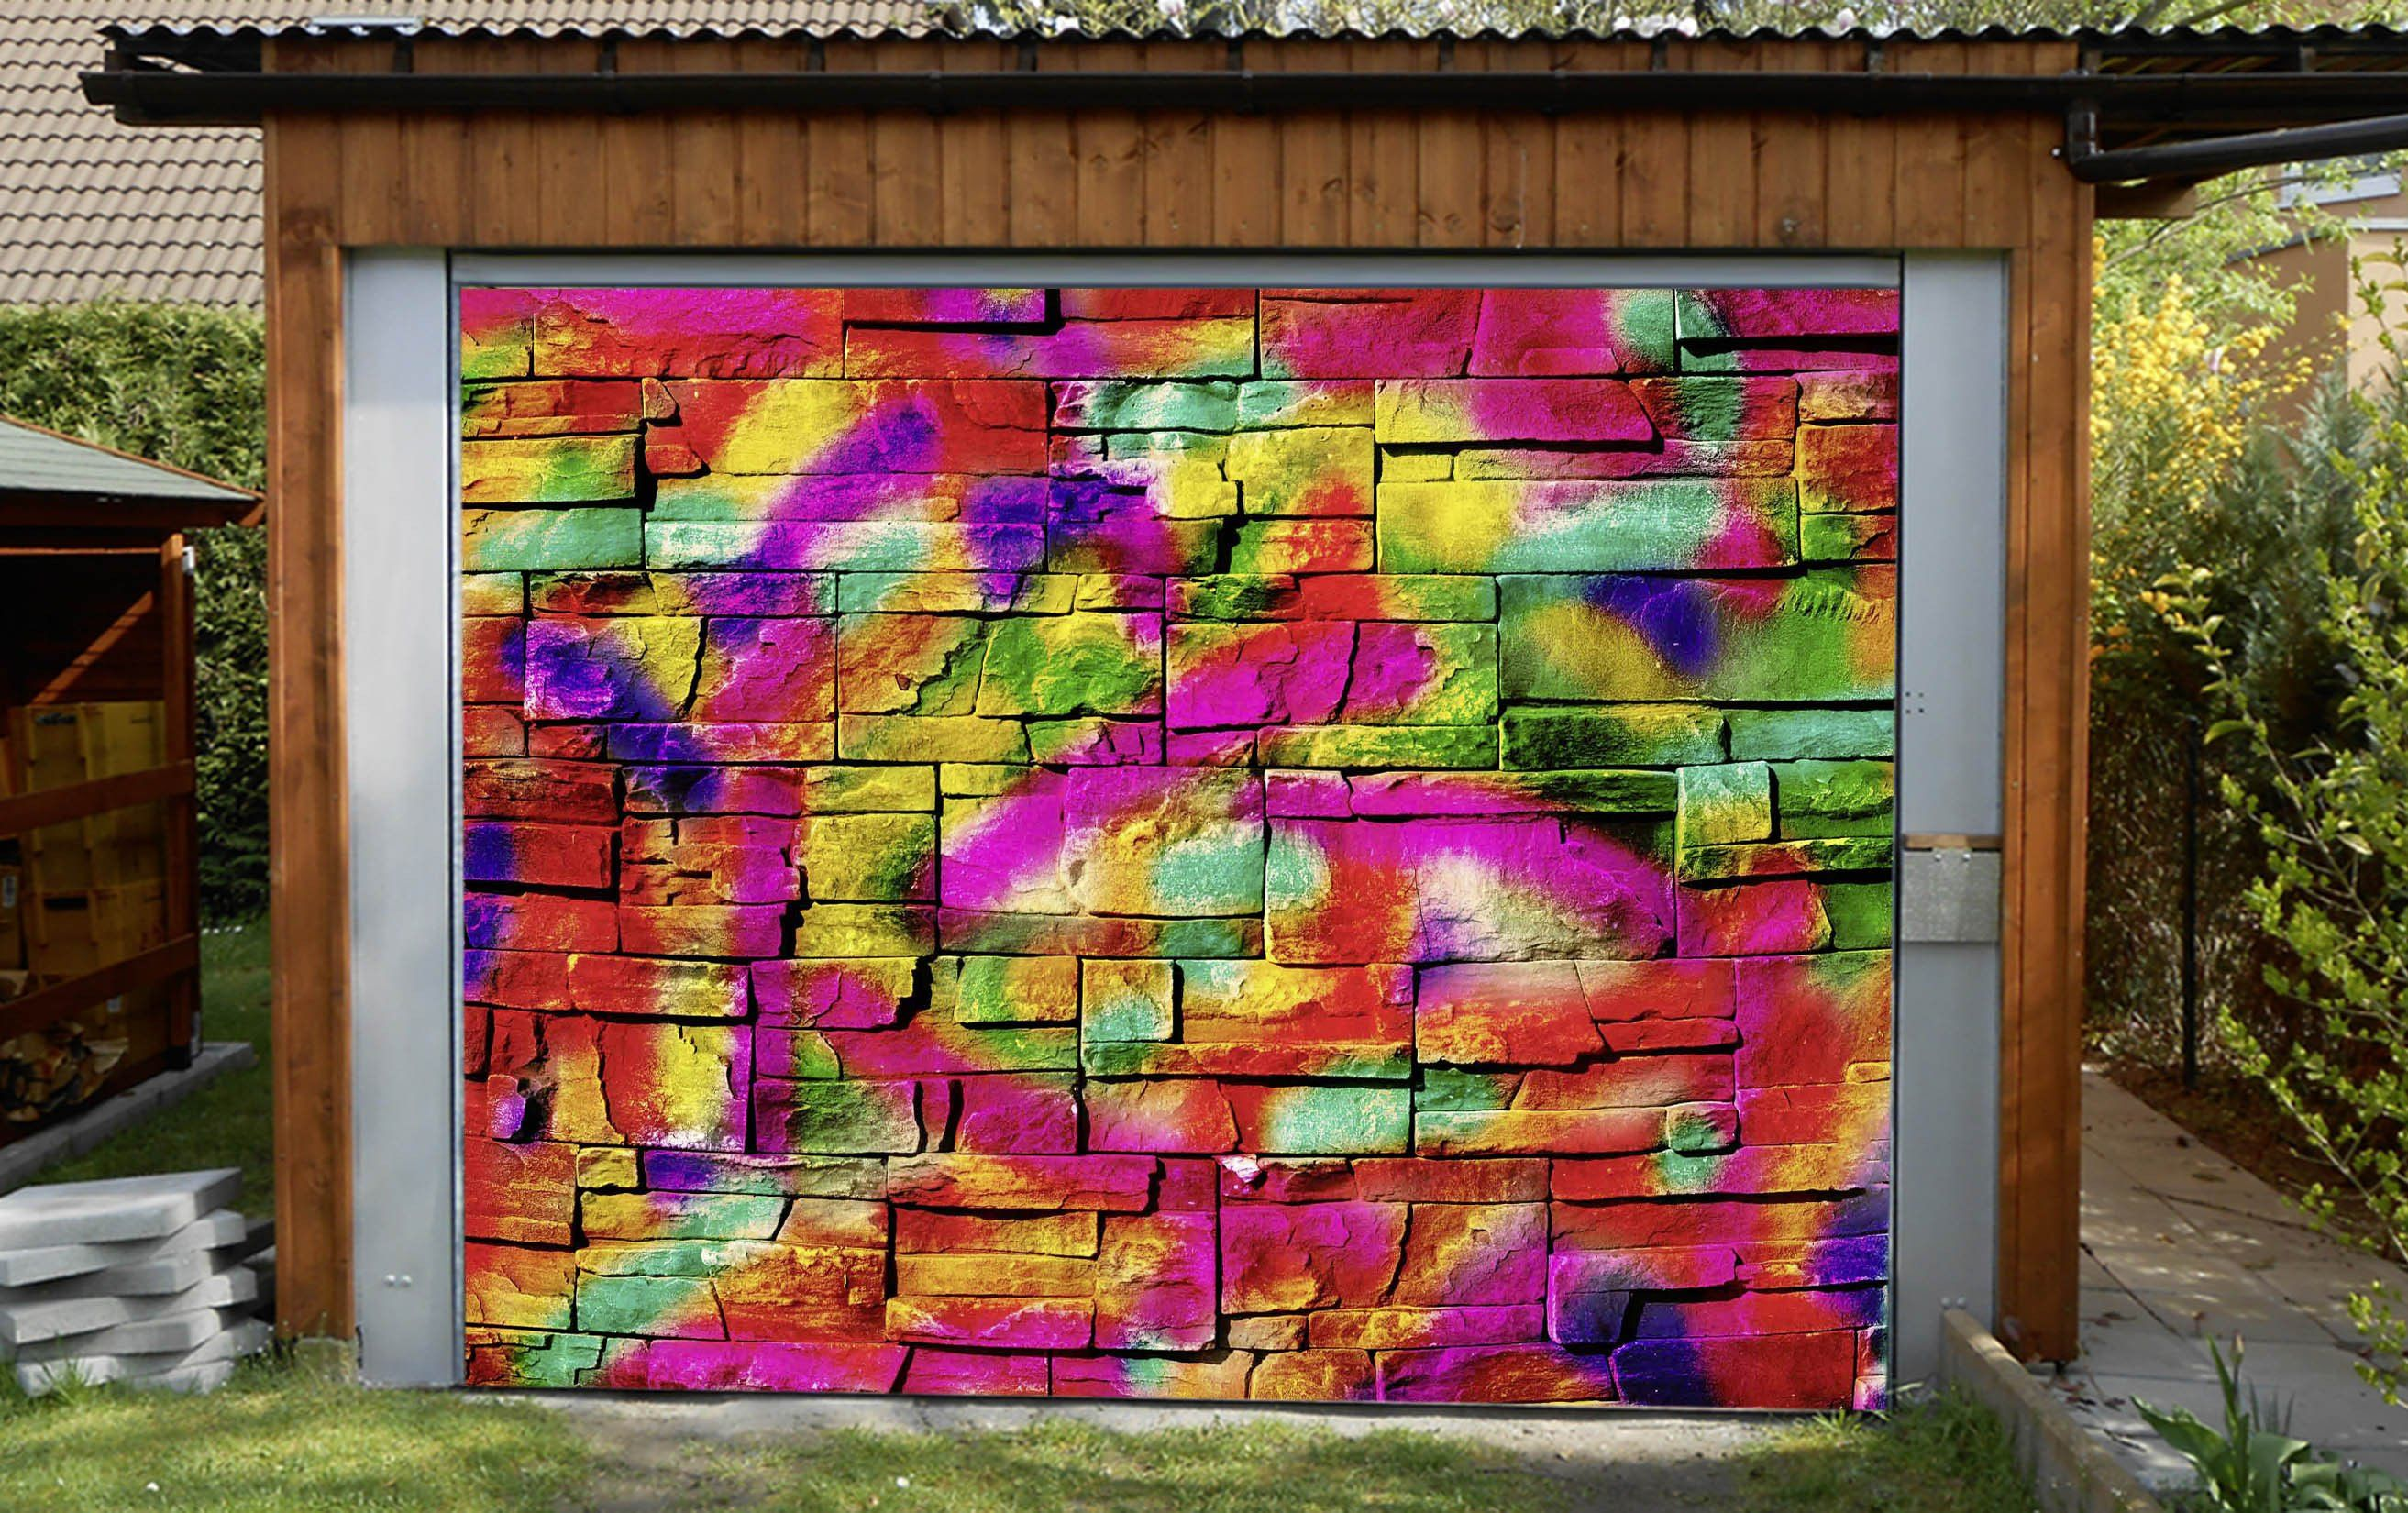 3D Bricks Graffiti 346 Garage Door Mural Wallpaper AJ Wallpaper